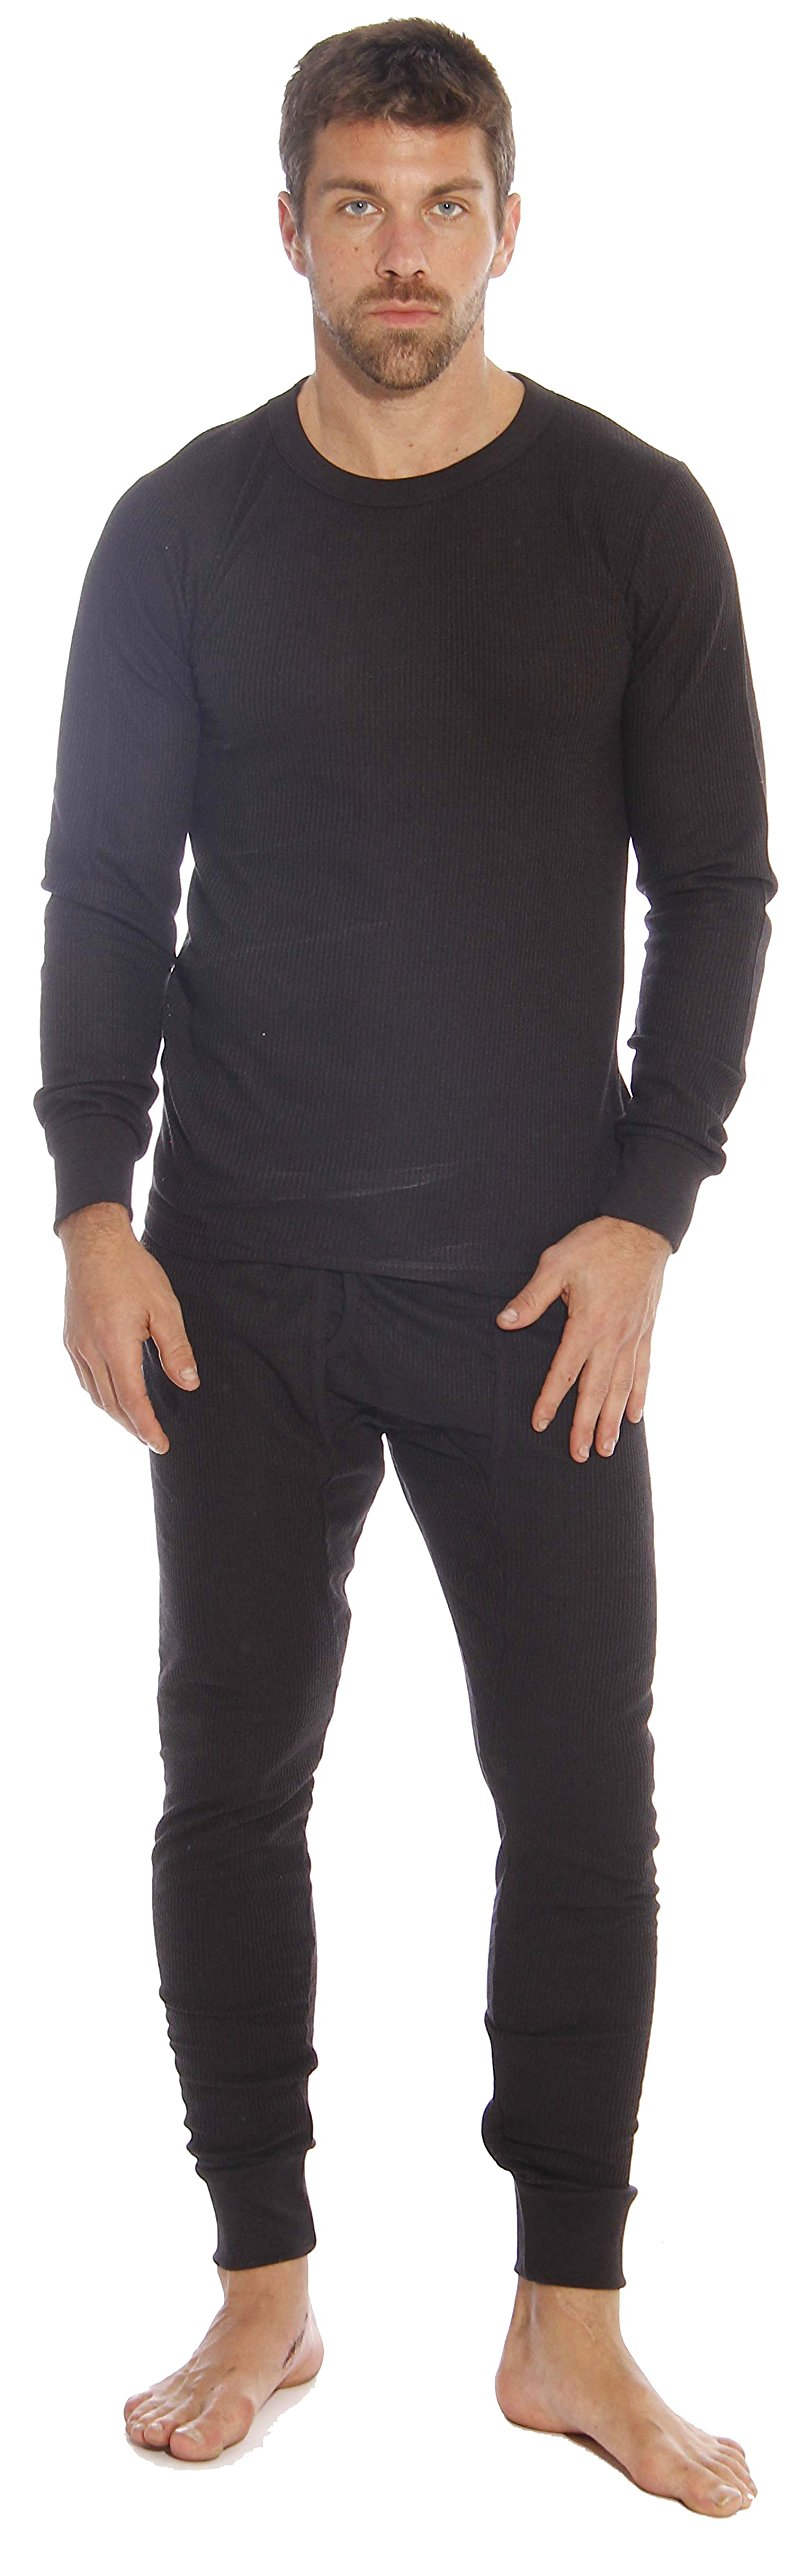 At The Buzzer Thermal Underwear Set For Men 95962-Black-XL